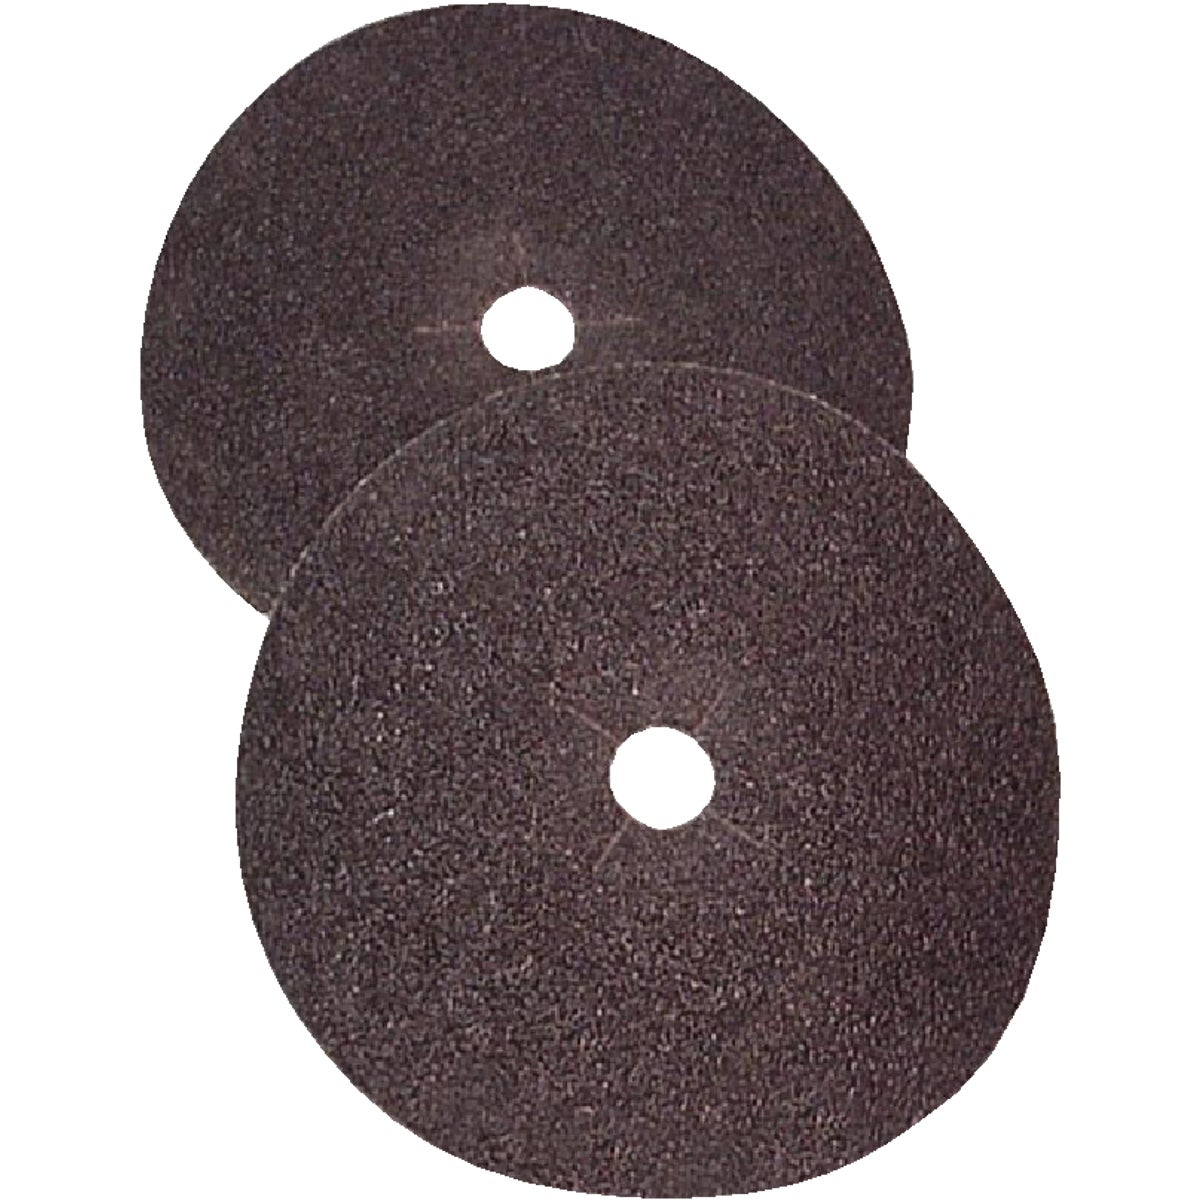 "7"" 24G FLR SANDING DISC - 006-870324 by Virginia Abrasives"